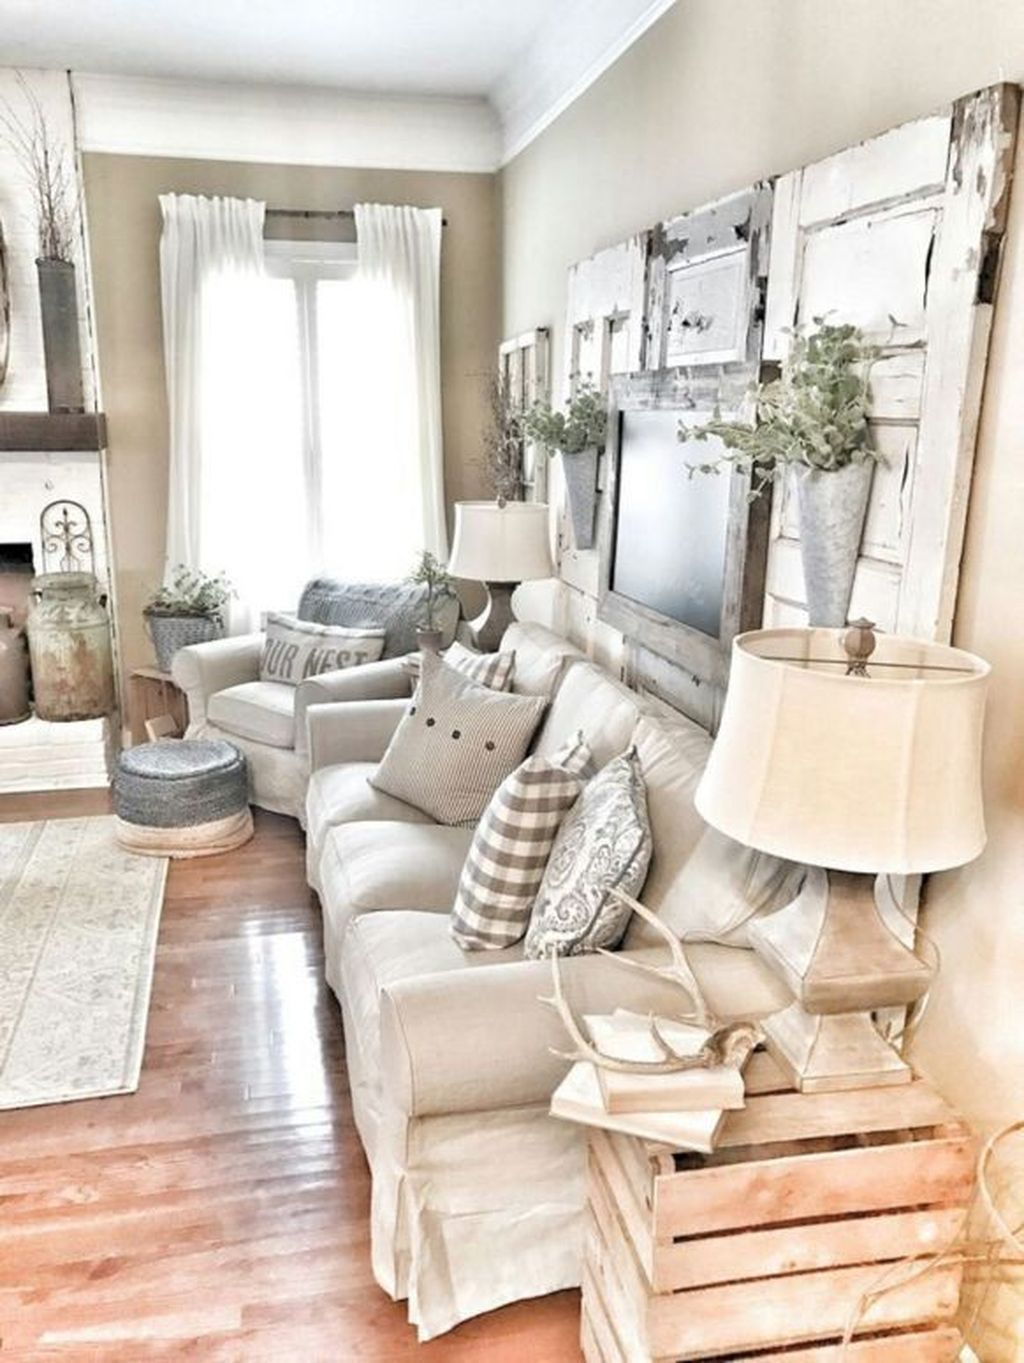 Cool 99 Cute Shabby Chic Farmhouse Living Room Decor Ideas. More at ...